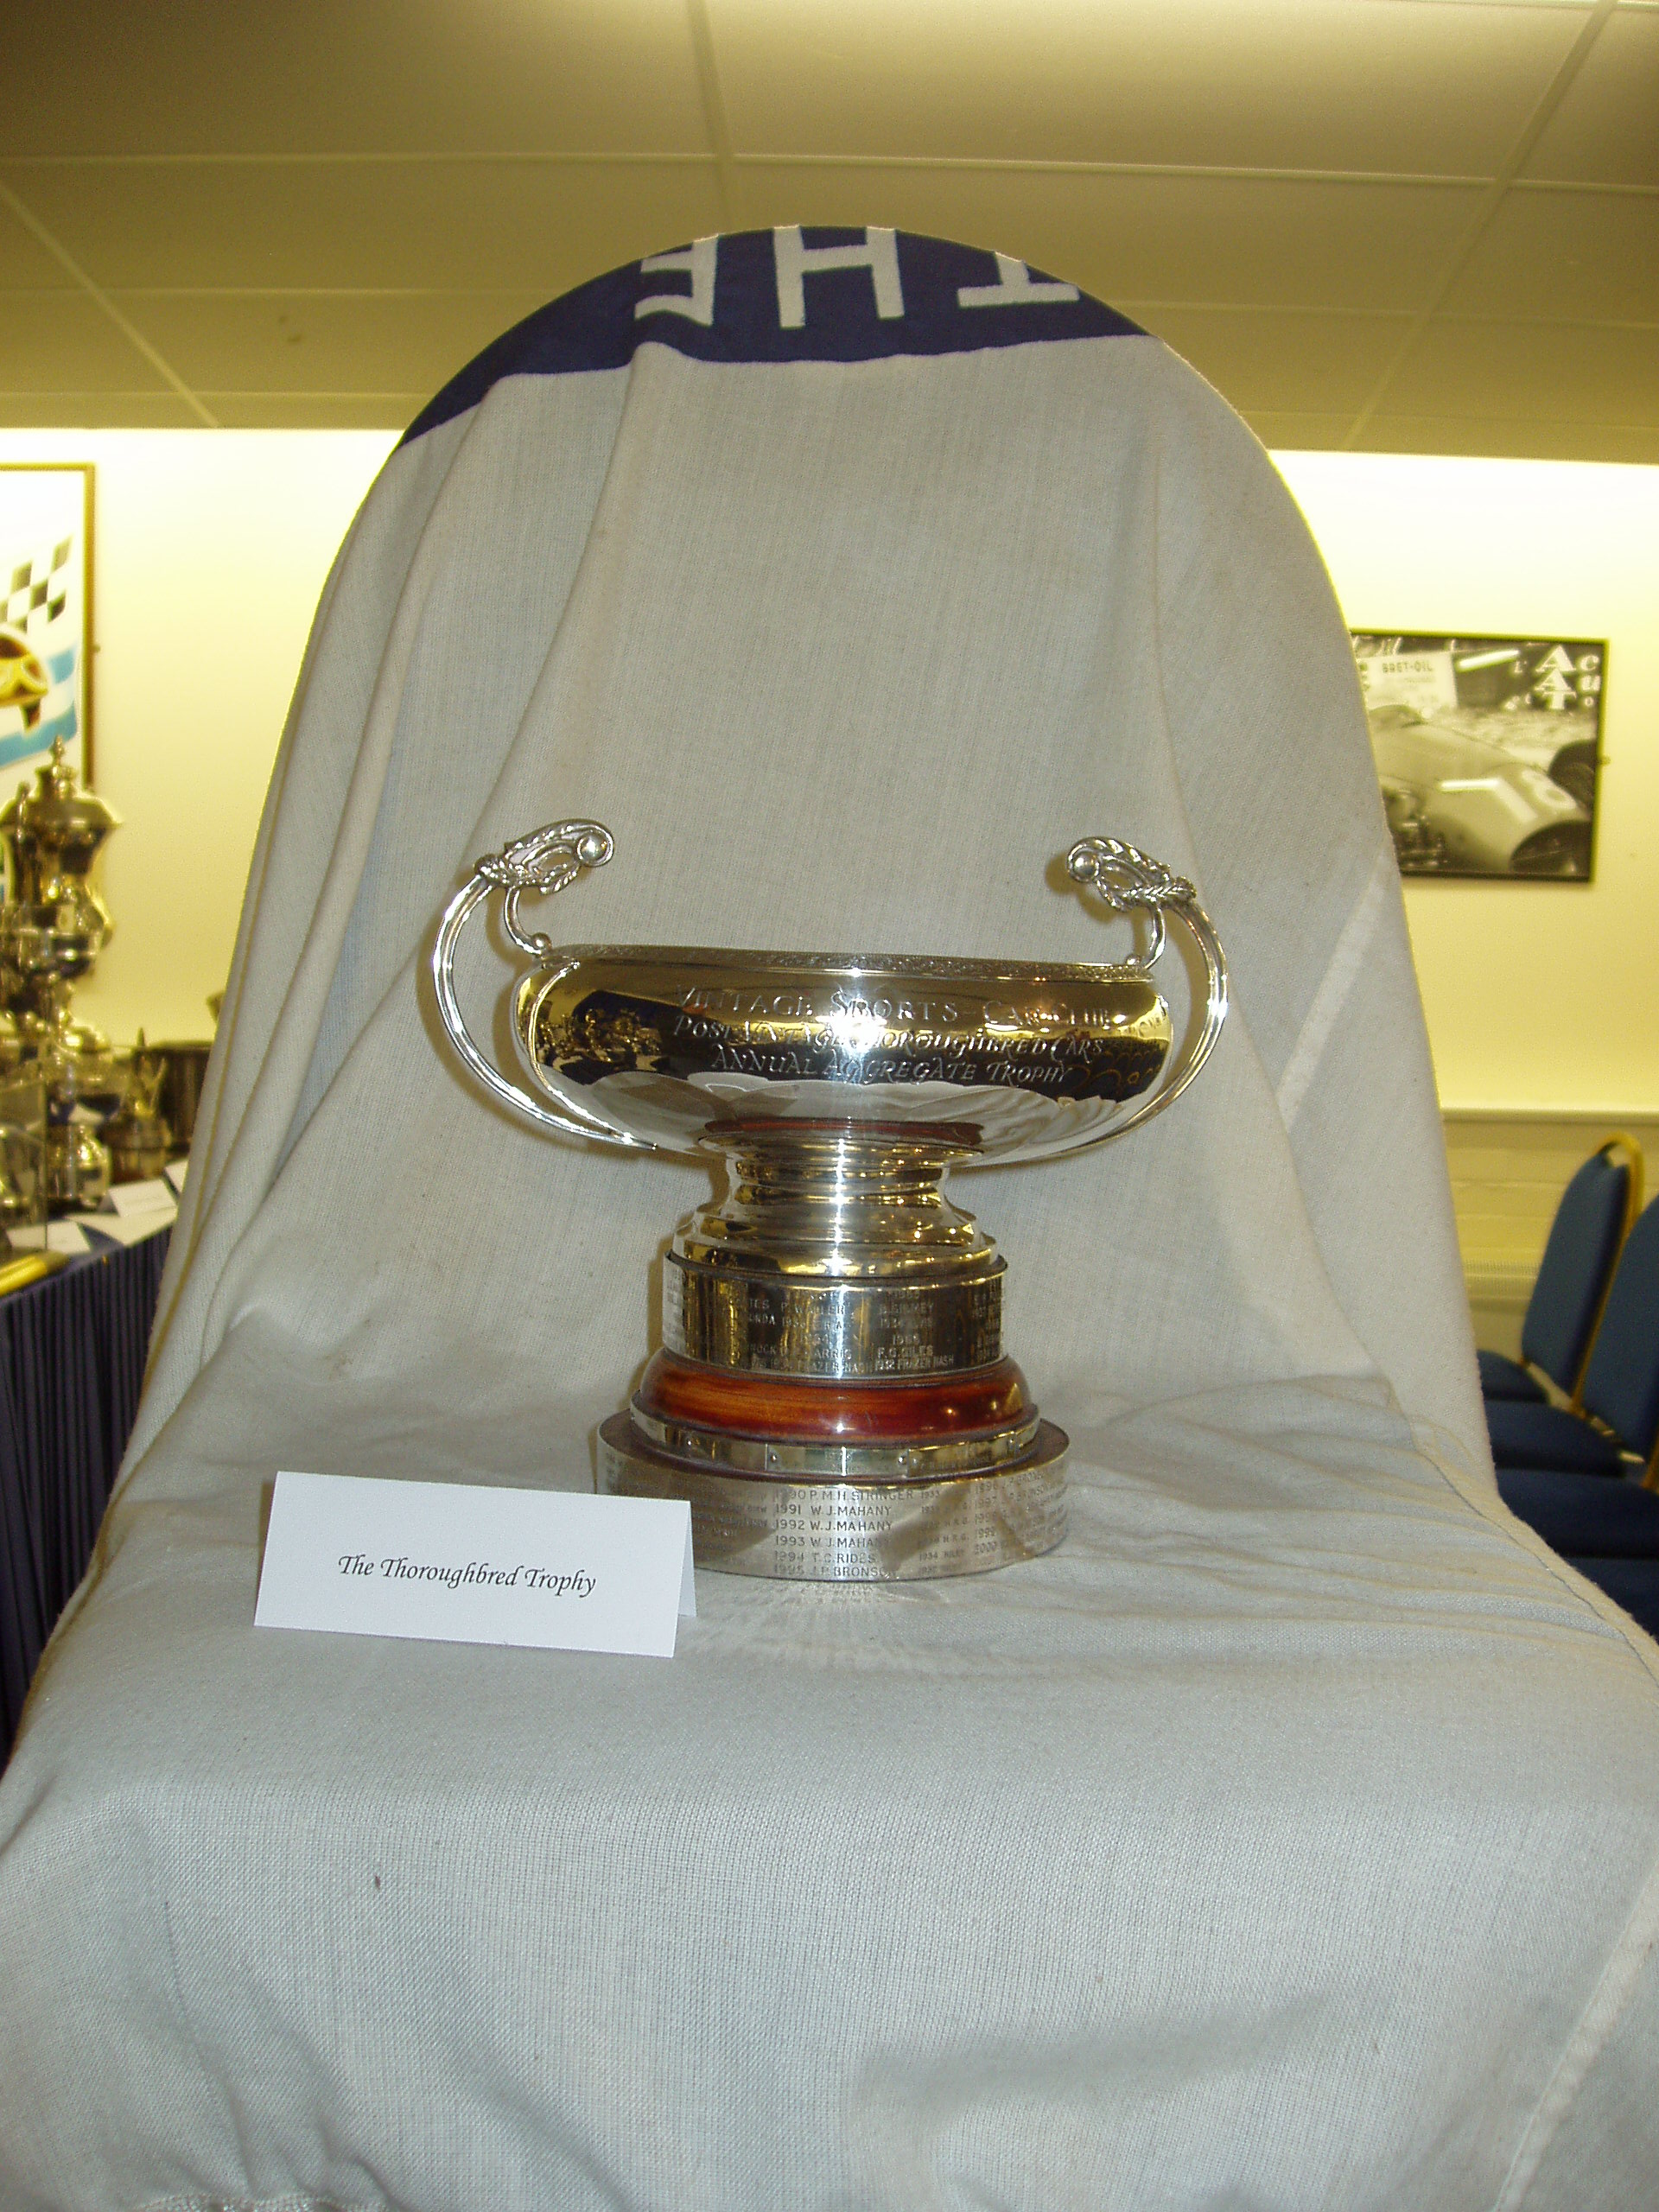 THOROUGHBRED TROPHY cover